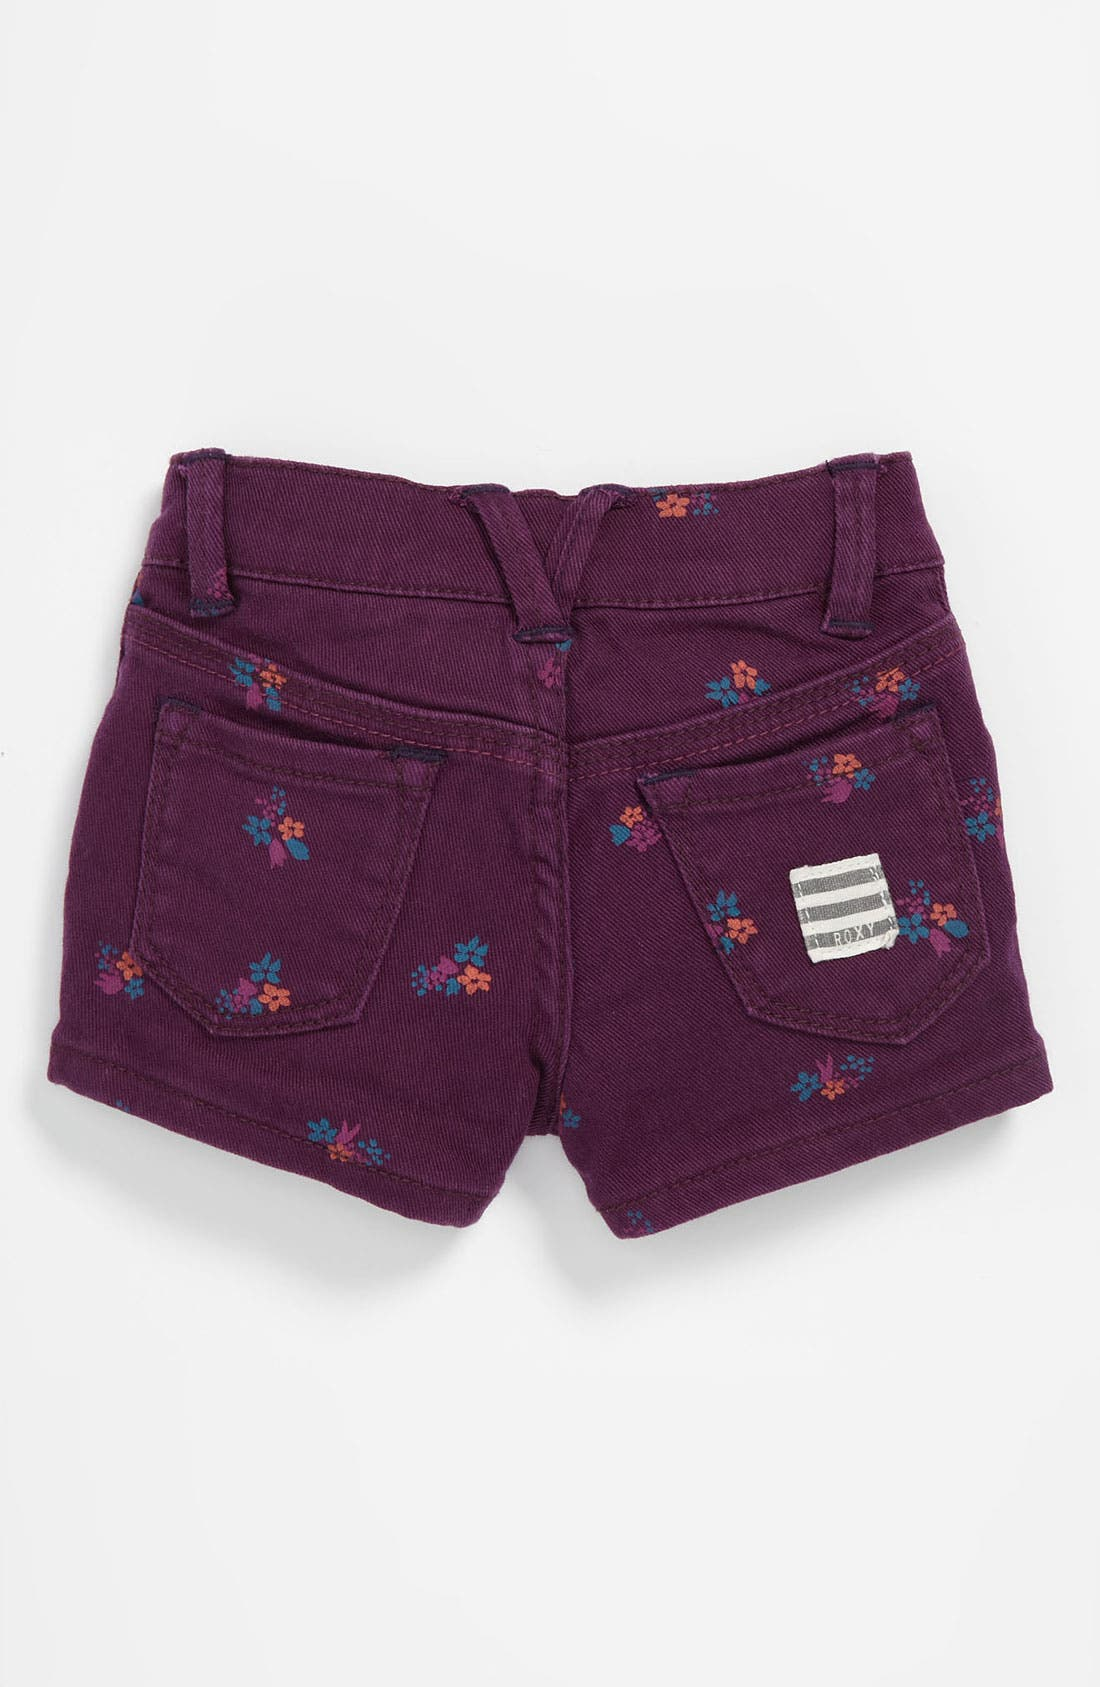 Alternate Image 1 Selected - 'Sundown' Shorts (Infant)